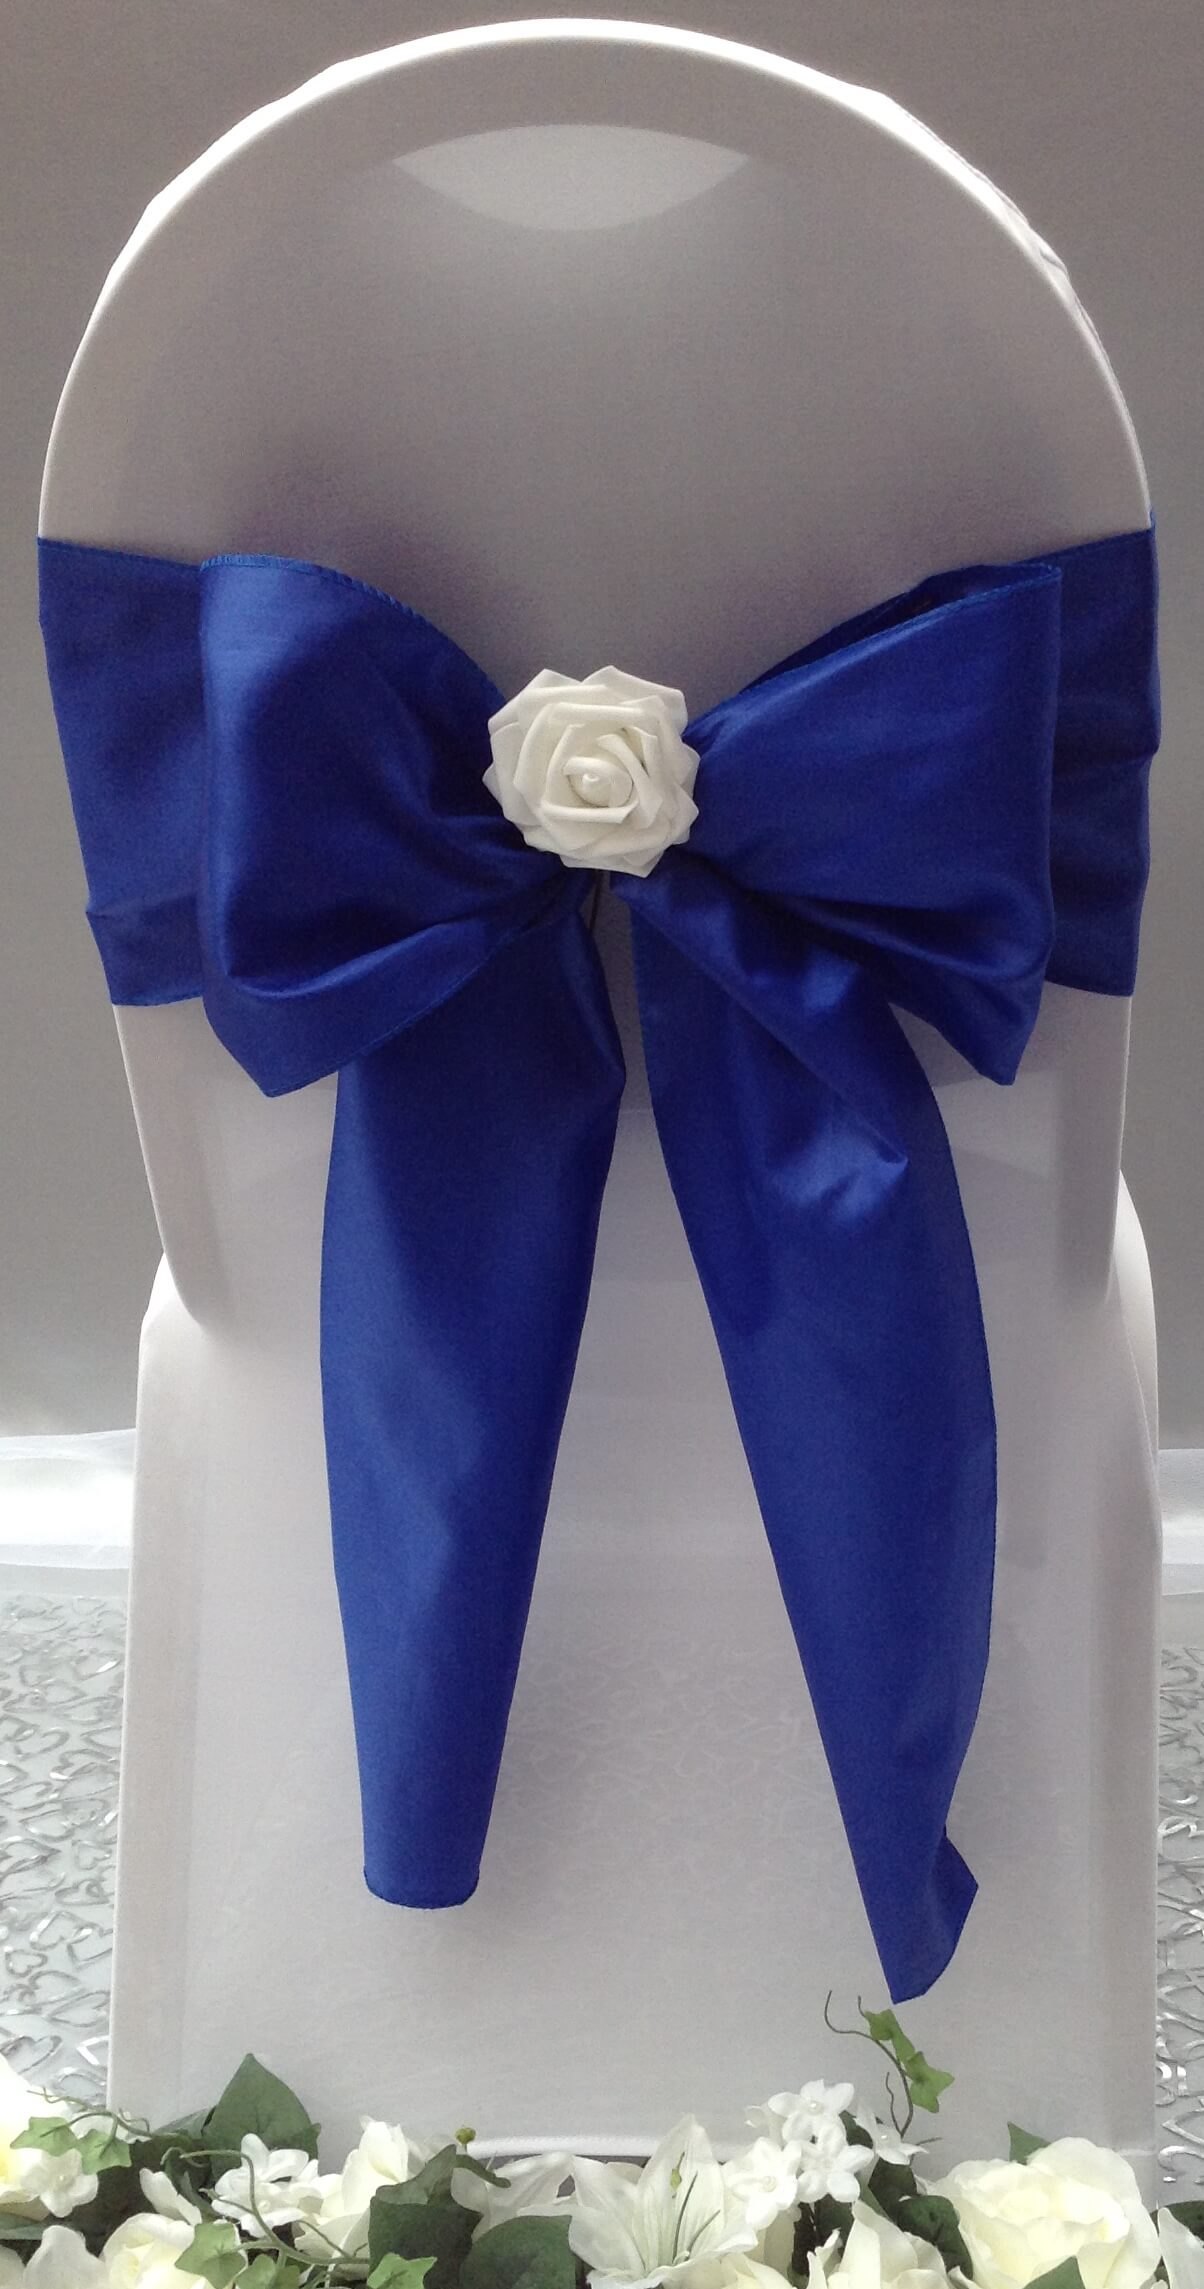 Royal blue satin sash with white flower